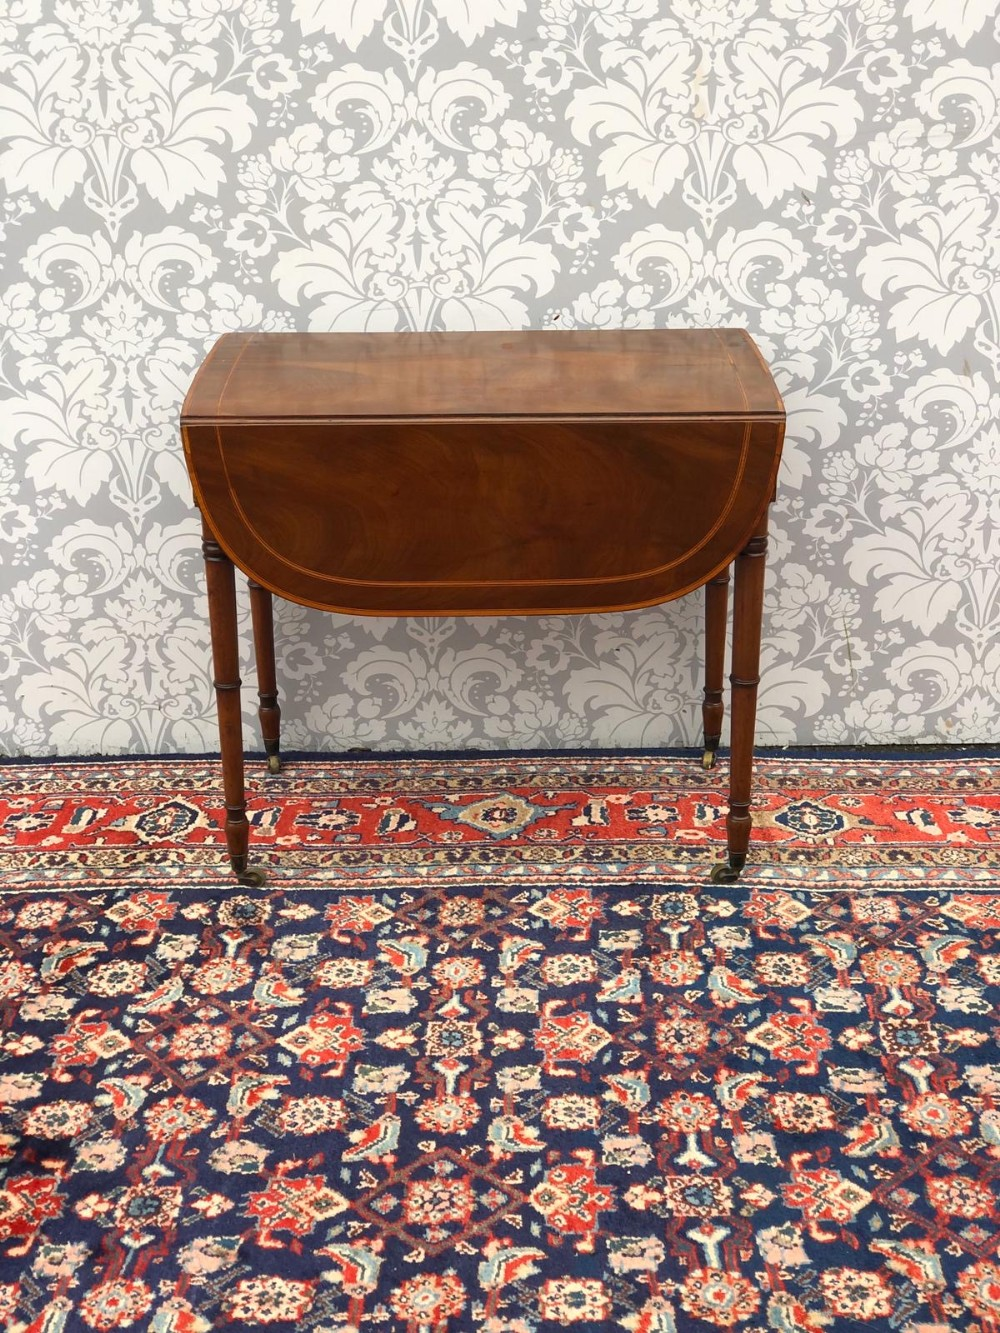 a very fine mahogany inlaid pembroke table drop leaf very fine fine quality all original